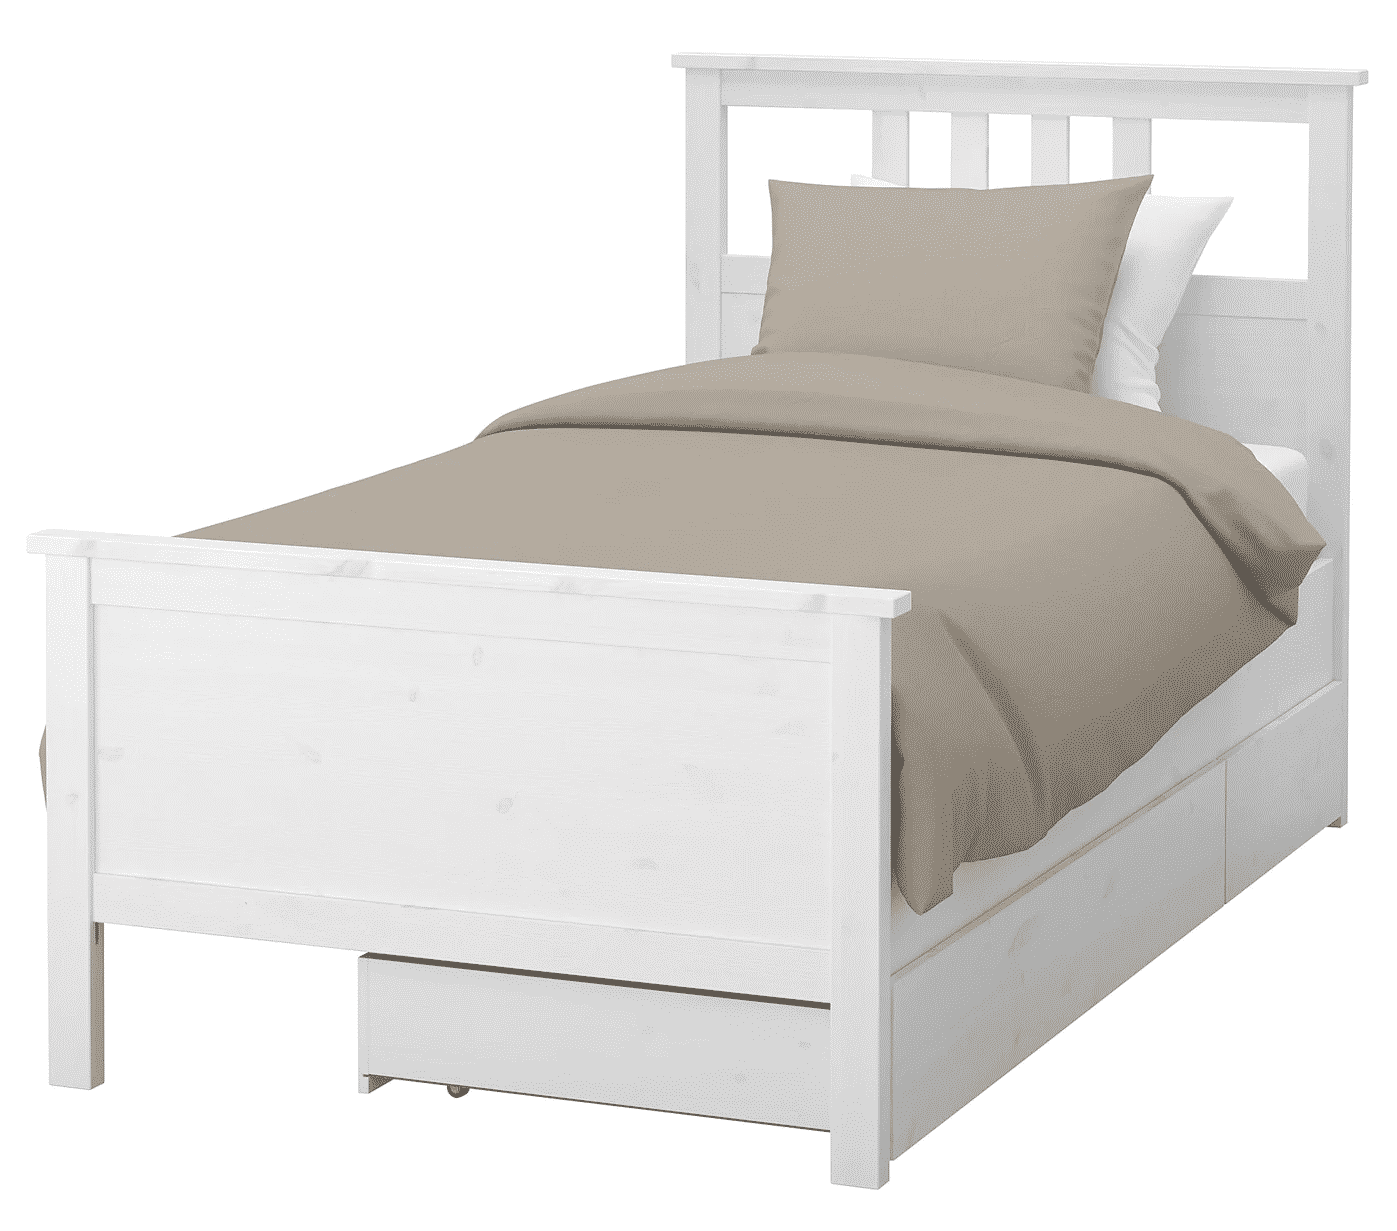 Hemnes Bed Frame with Two Storage Boxes